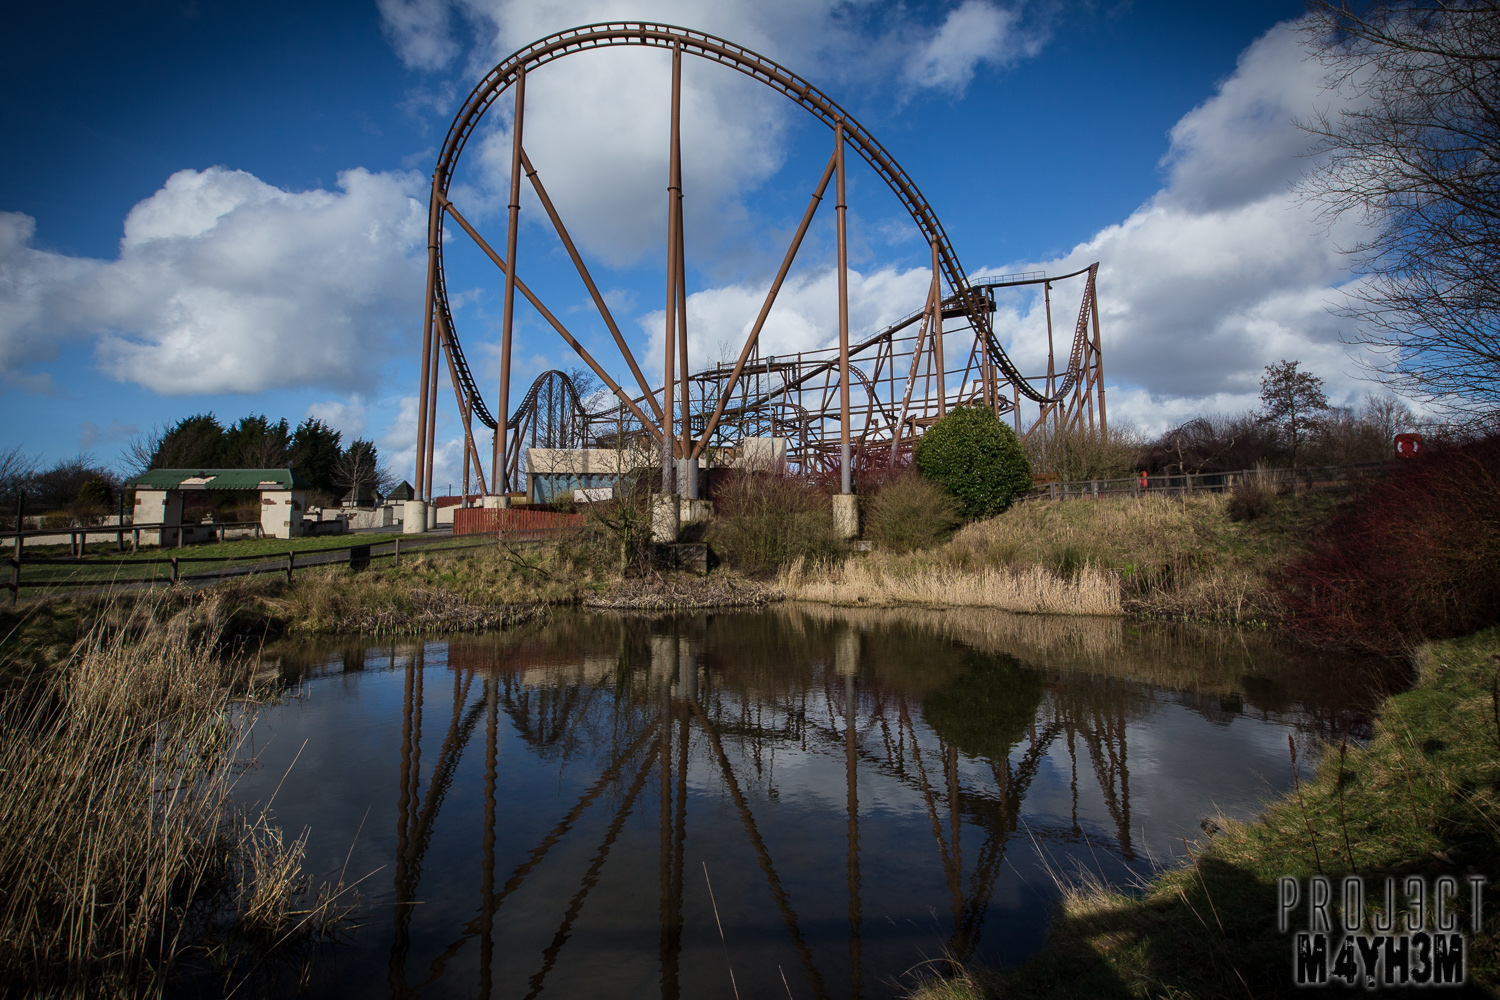 theme park Get two great parks for the price of one at dorney park there's so much to do here that you'll see why it's one of the best amusement parks in pa visit today.